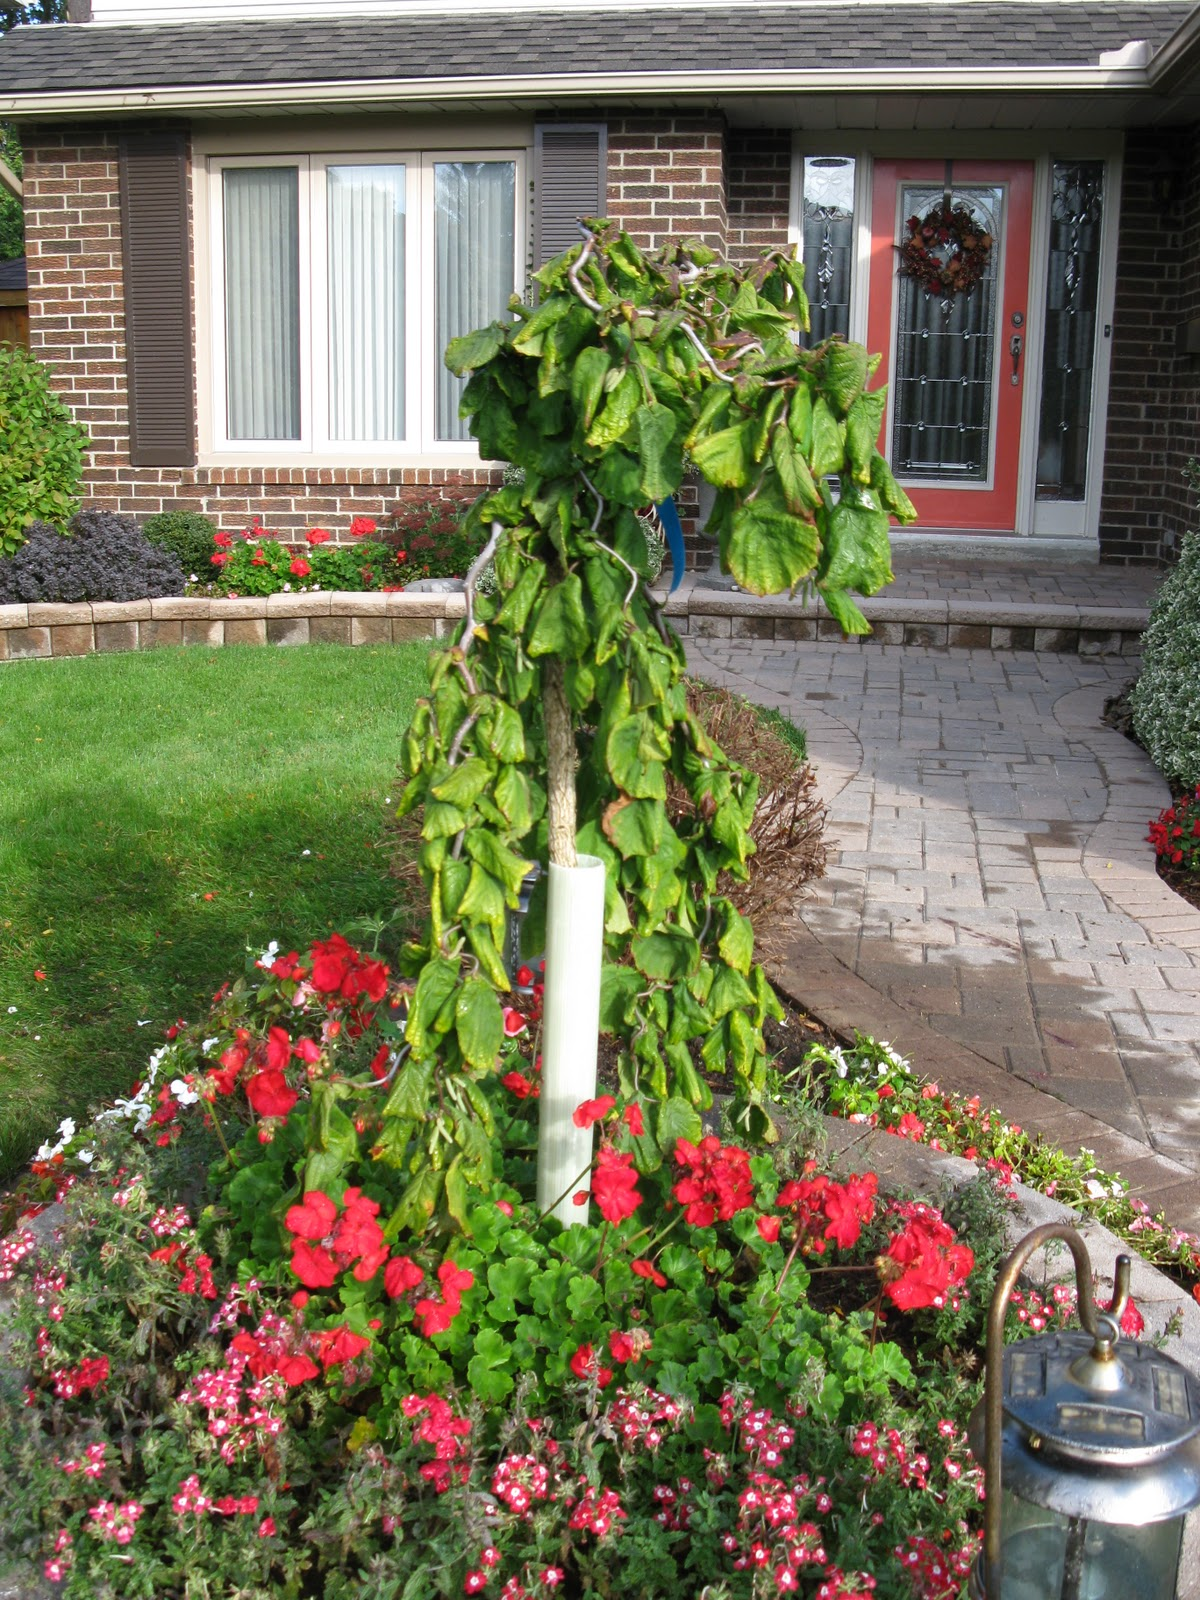 Harry lauder walking stick trees - Photo By White Swan Properties This Second Photo Of A Harry Lauder S Walking Stick